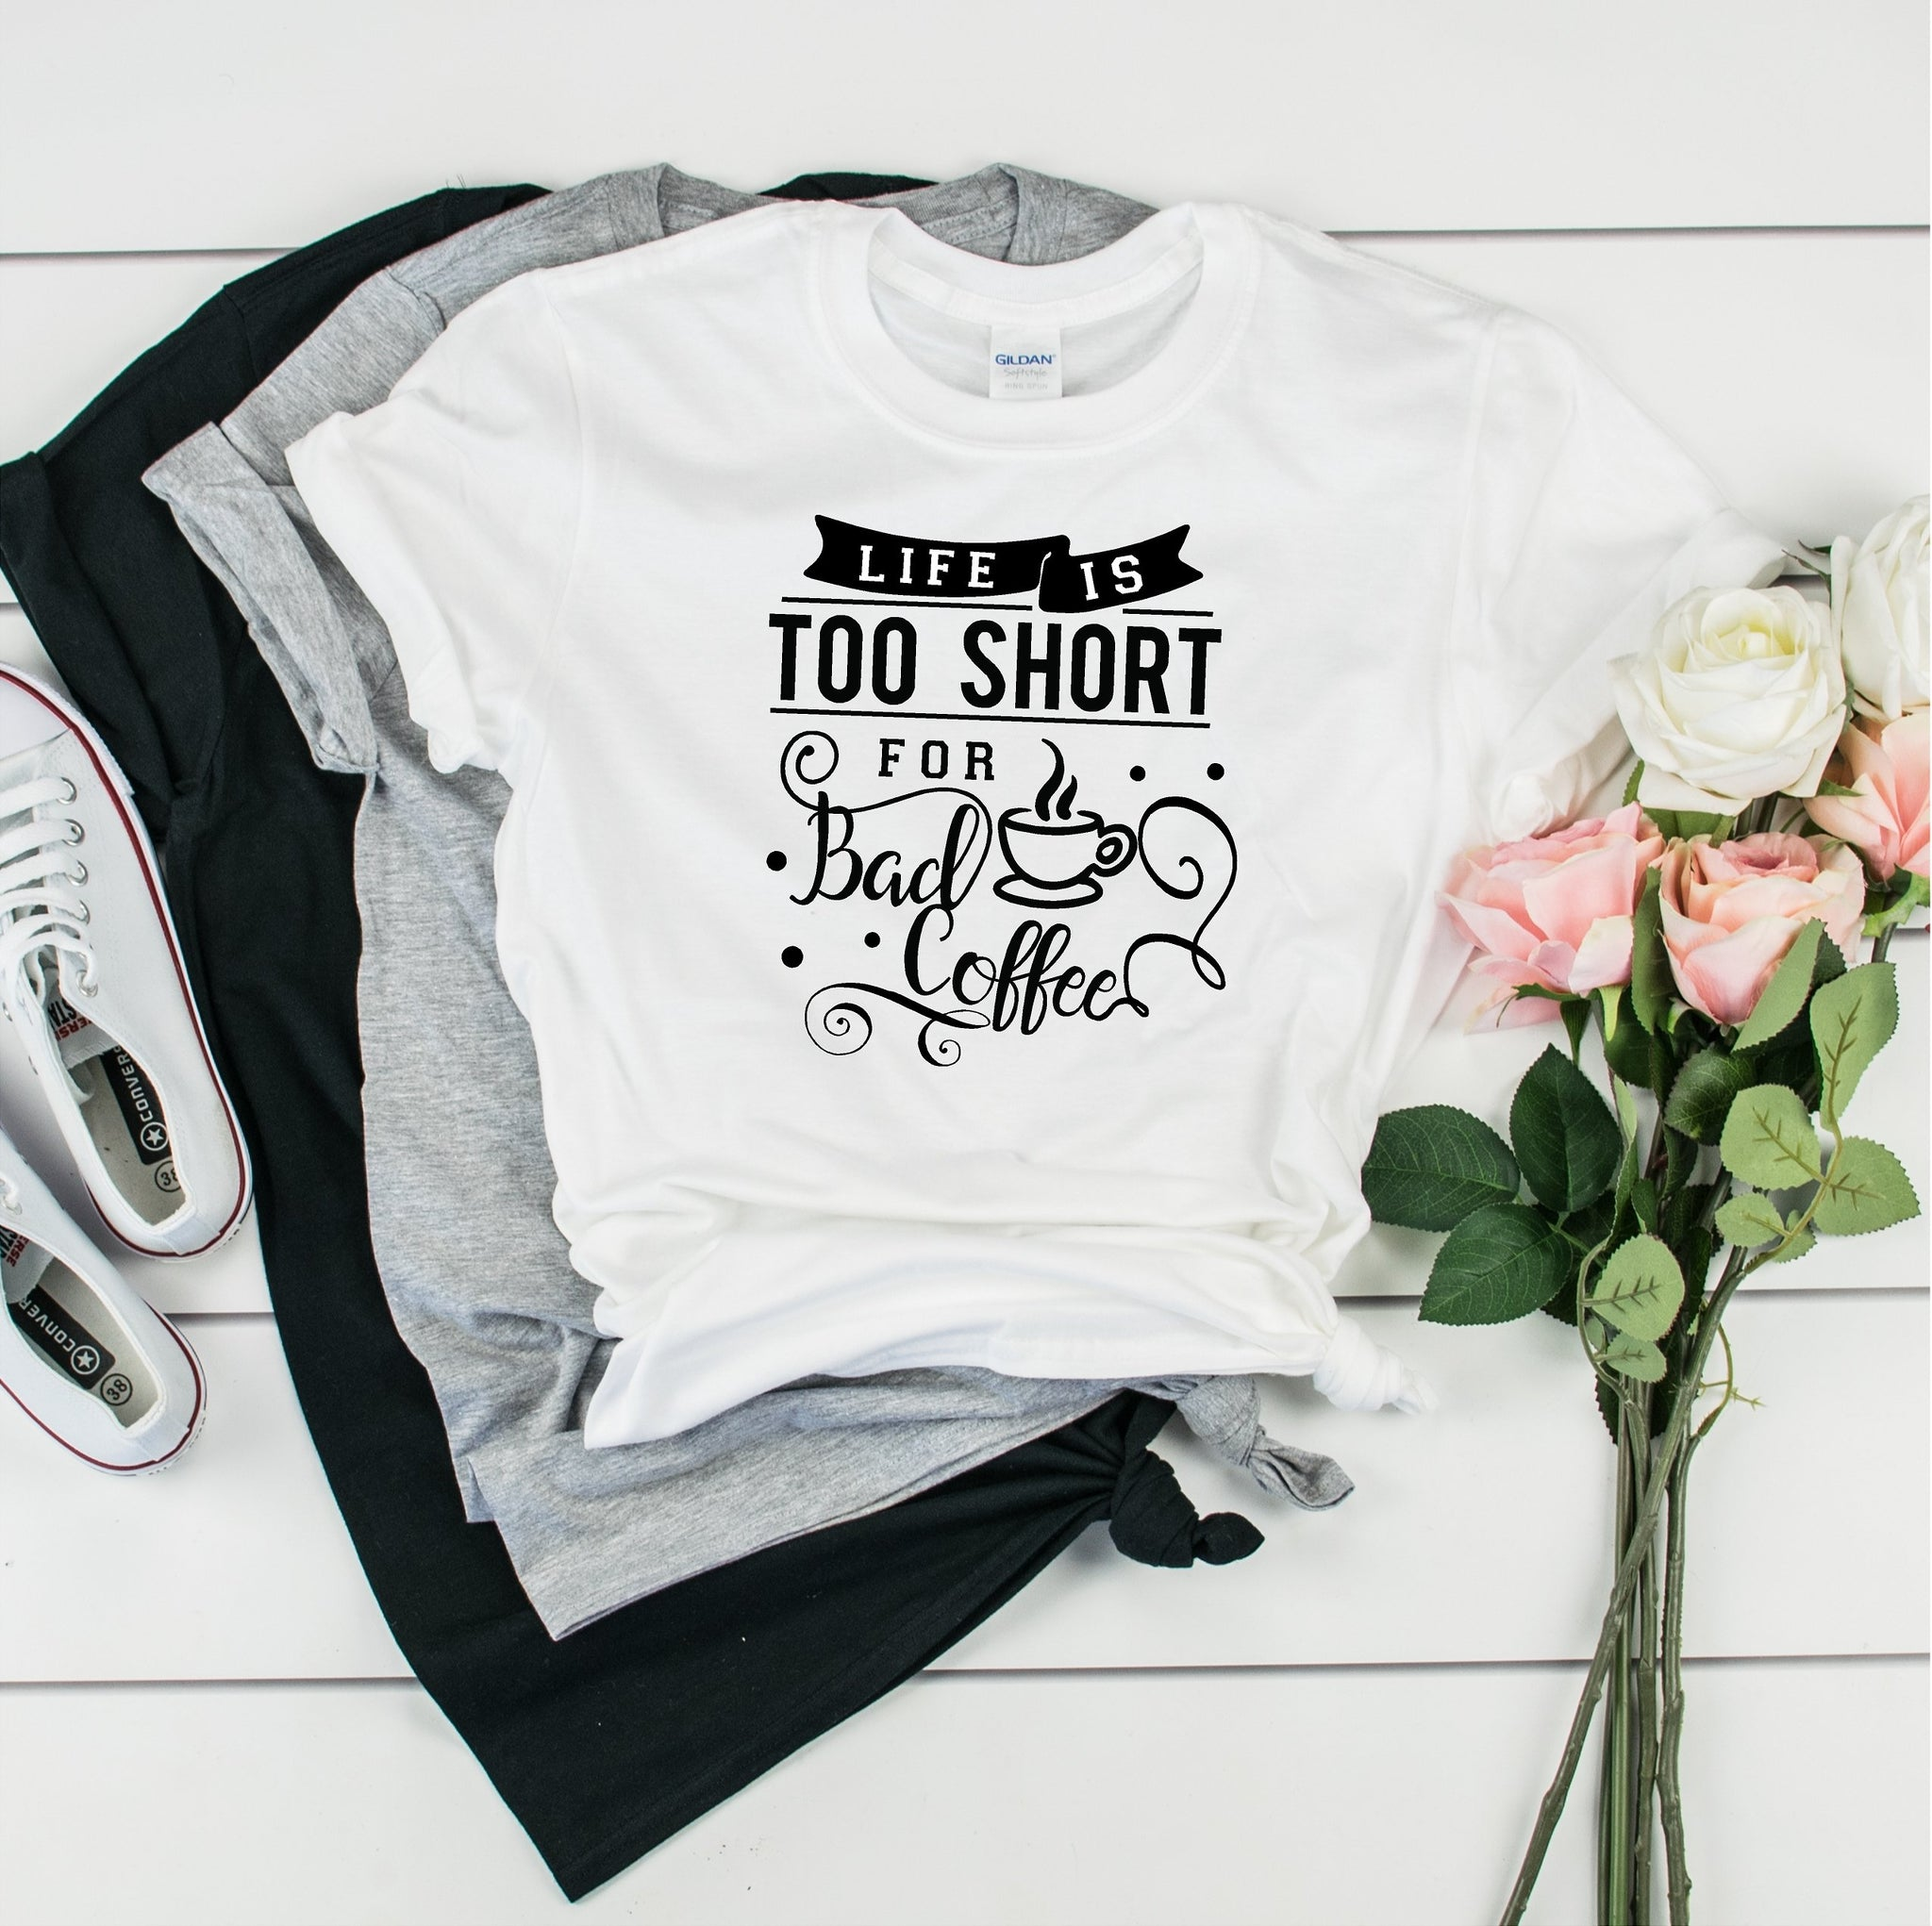 Life Is Too Short For Bad Coffee -Ultra Cotton Short Sleeve T-Shirt- FHD08